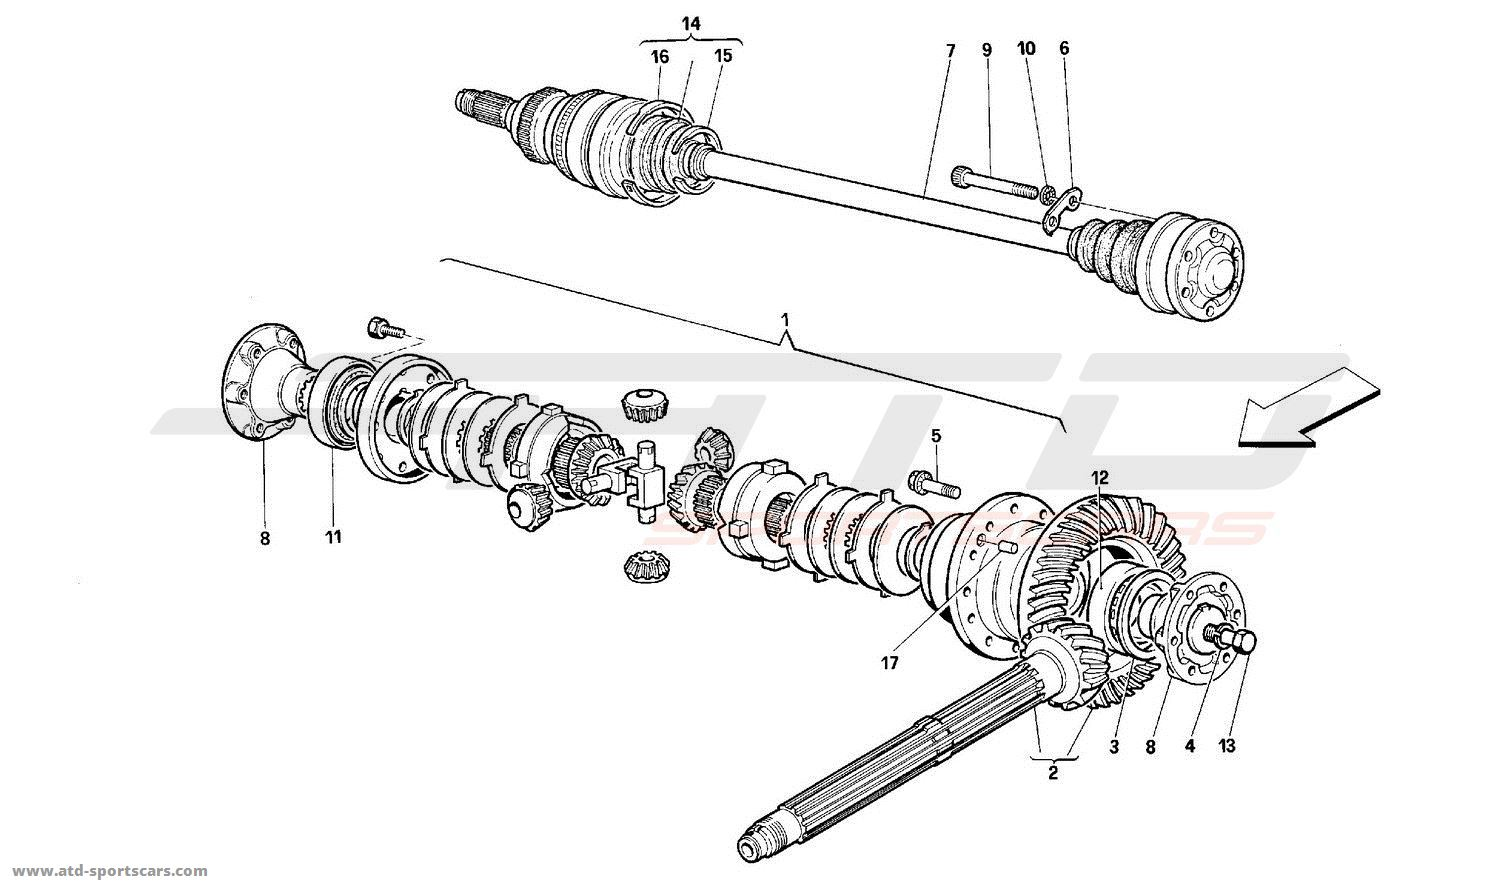 Ferrari 512M DIFFERENTIAL AND AXLE SHAFTS